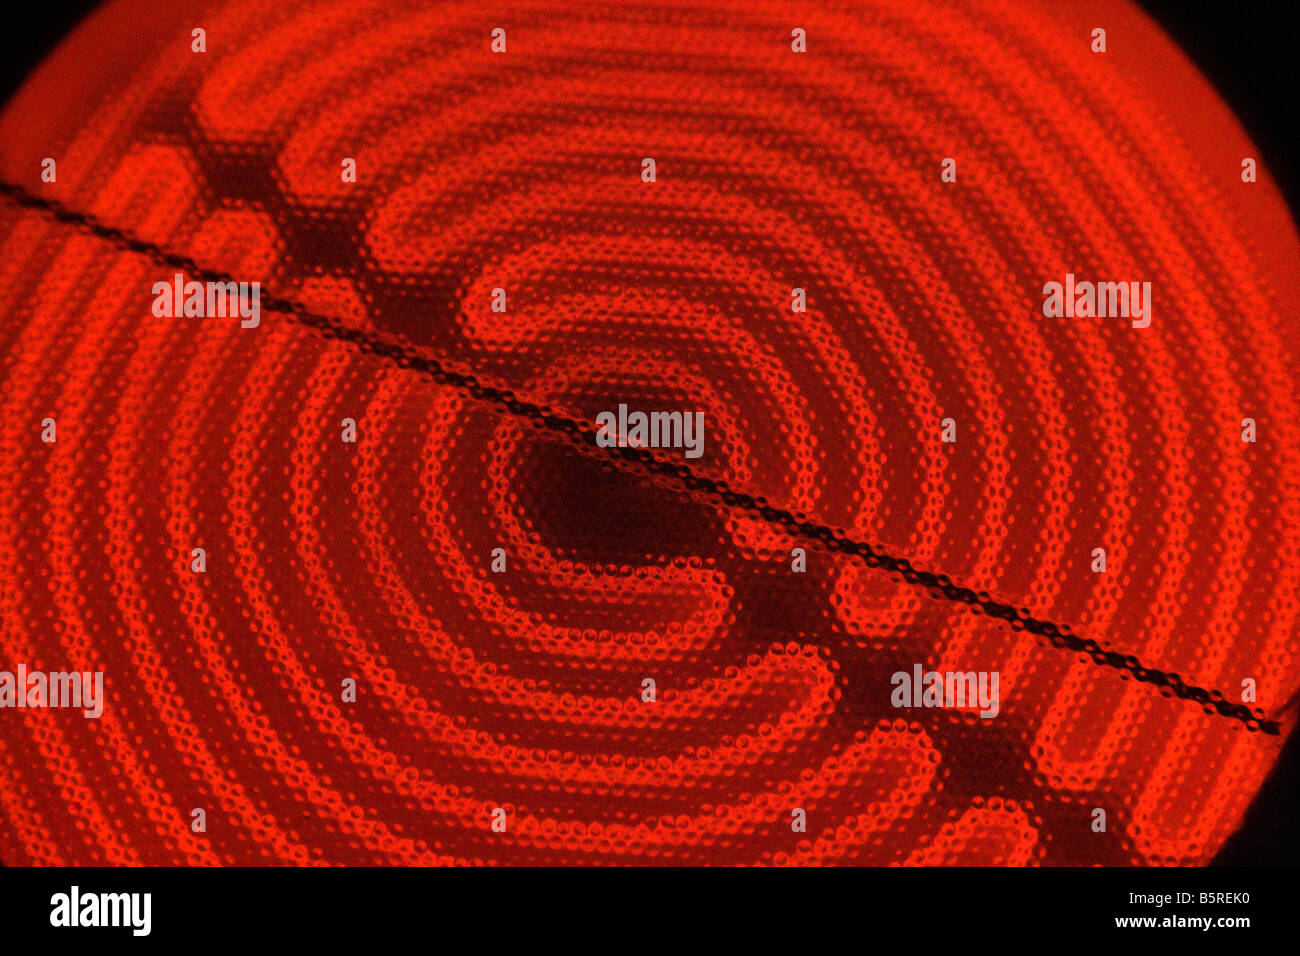 Close up of a red hot glowing electric stove cooking element. - Stock Image